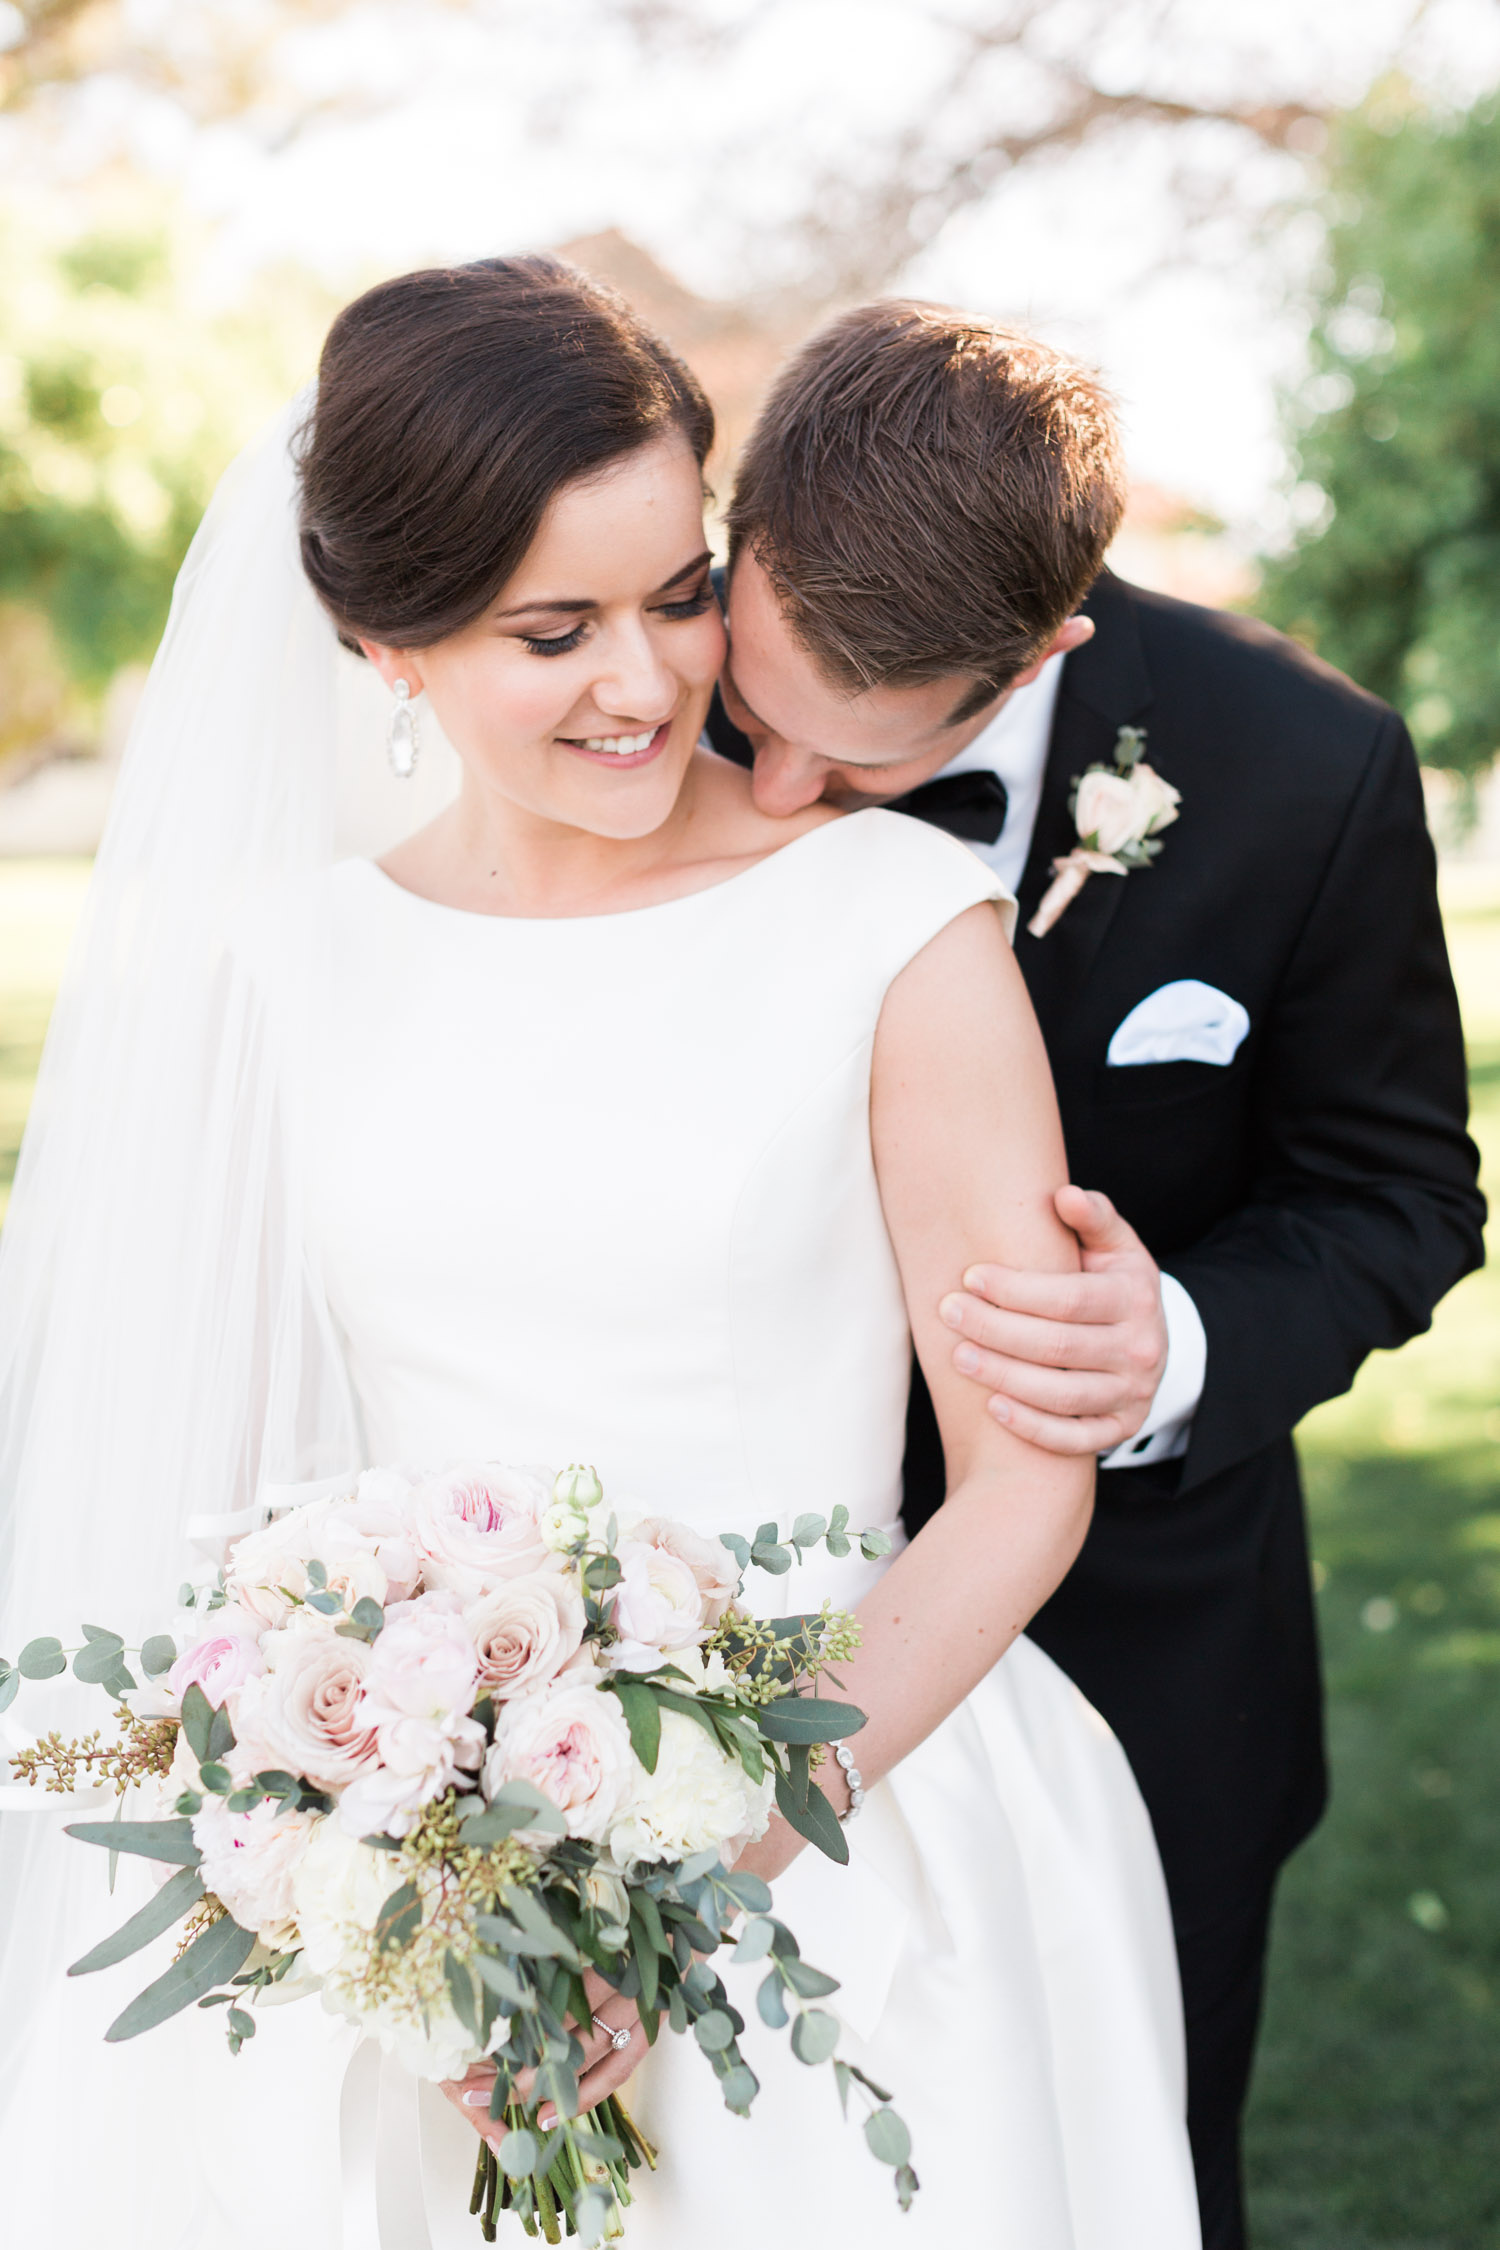 Groom kissing bride on shoulder| Betsy & John Photography | Tucson Wedding Photographers